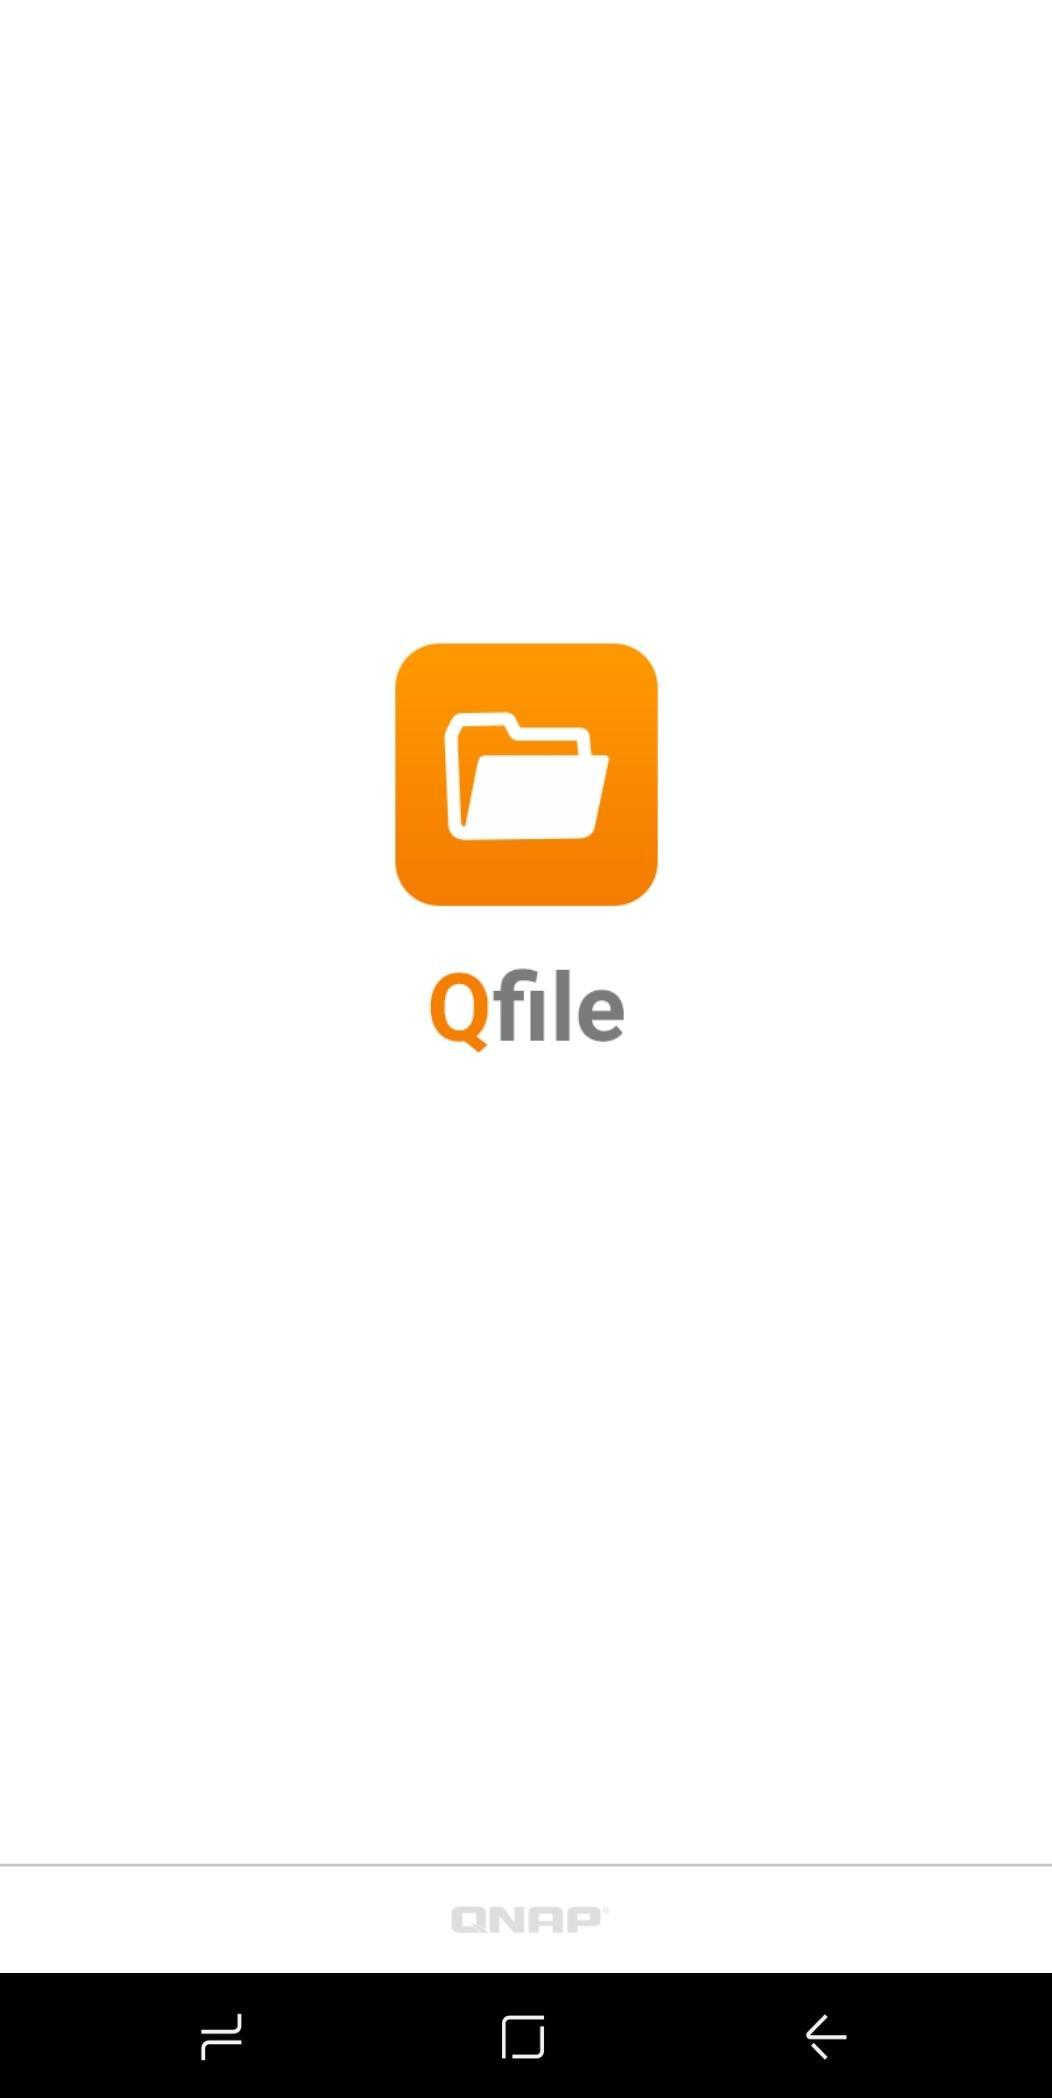 Qfile for Android - APK Download